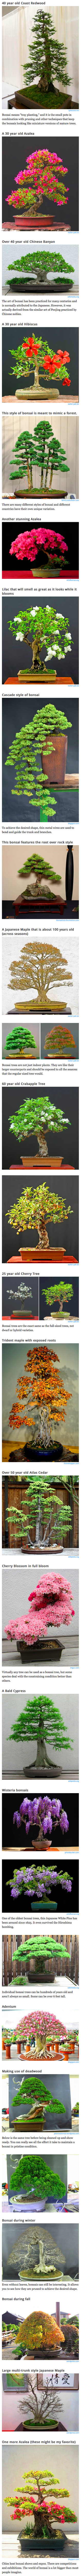 When most people think of bonsai, they think of the standard Juniper. TRY AGAIN. Bonsai trees come in many forms, and they are about to rock your plant world.